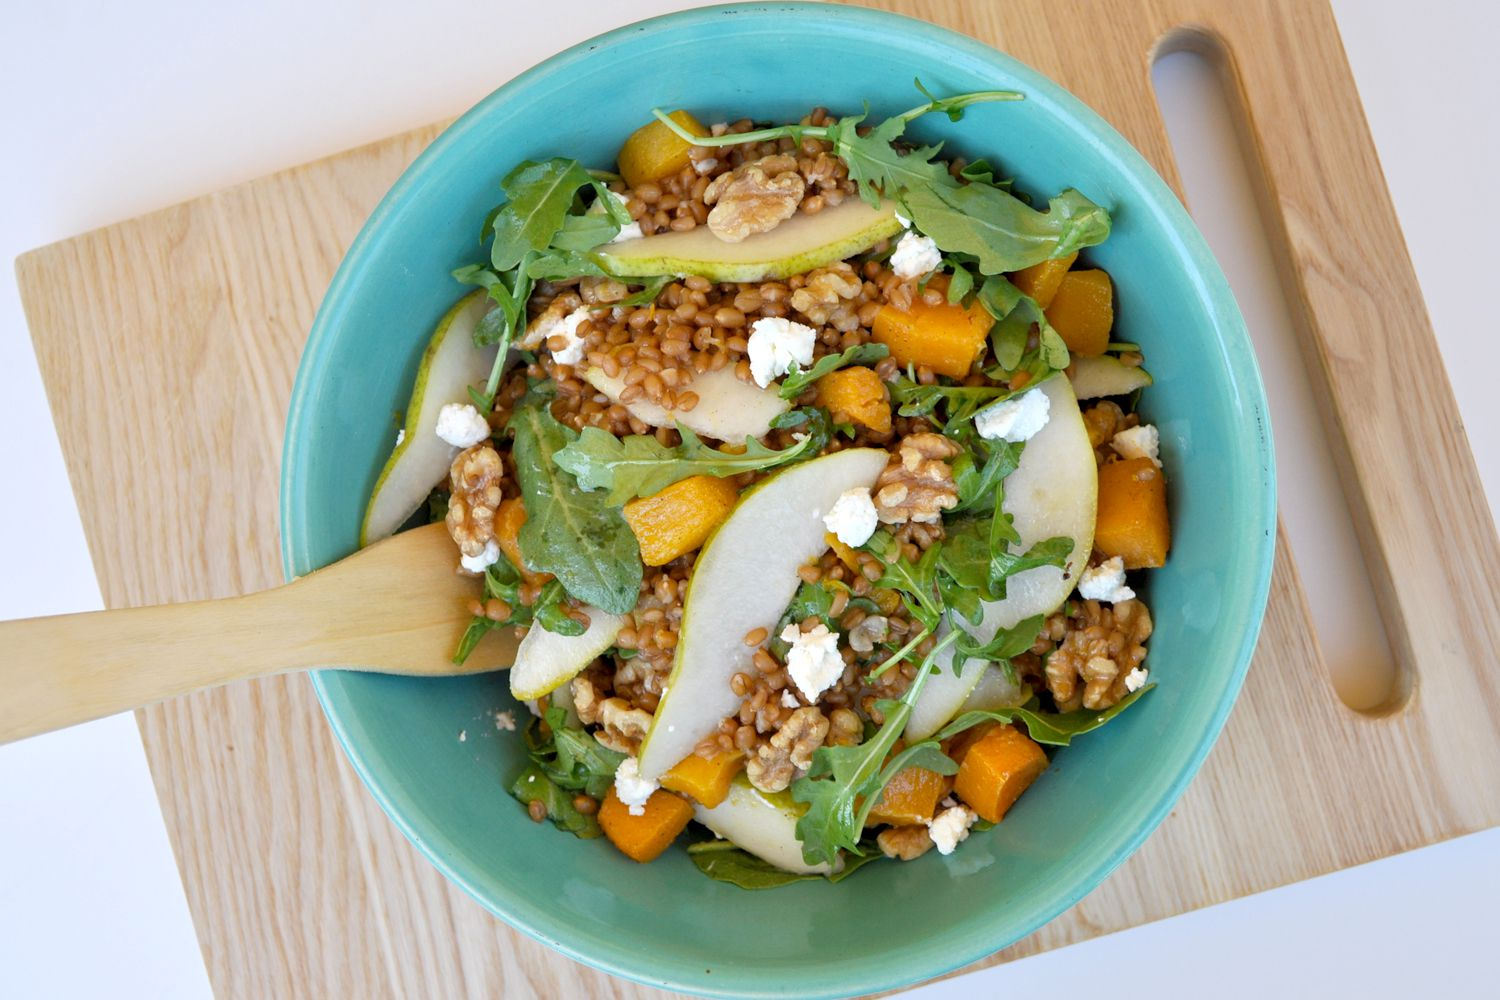 Wheat Berry Salad With Pear and Goat Cheese